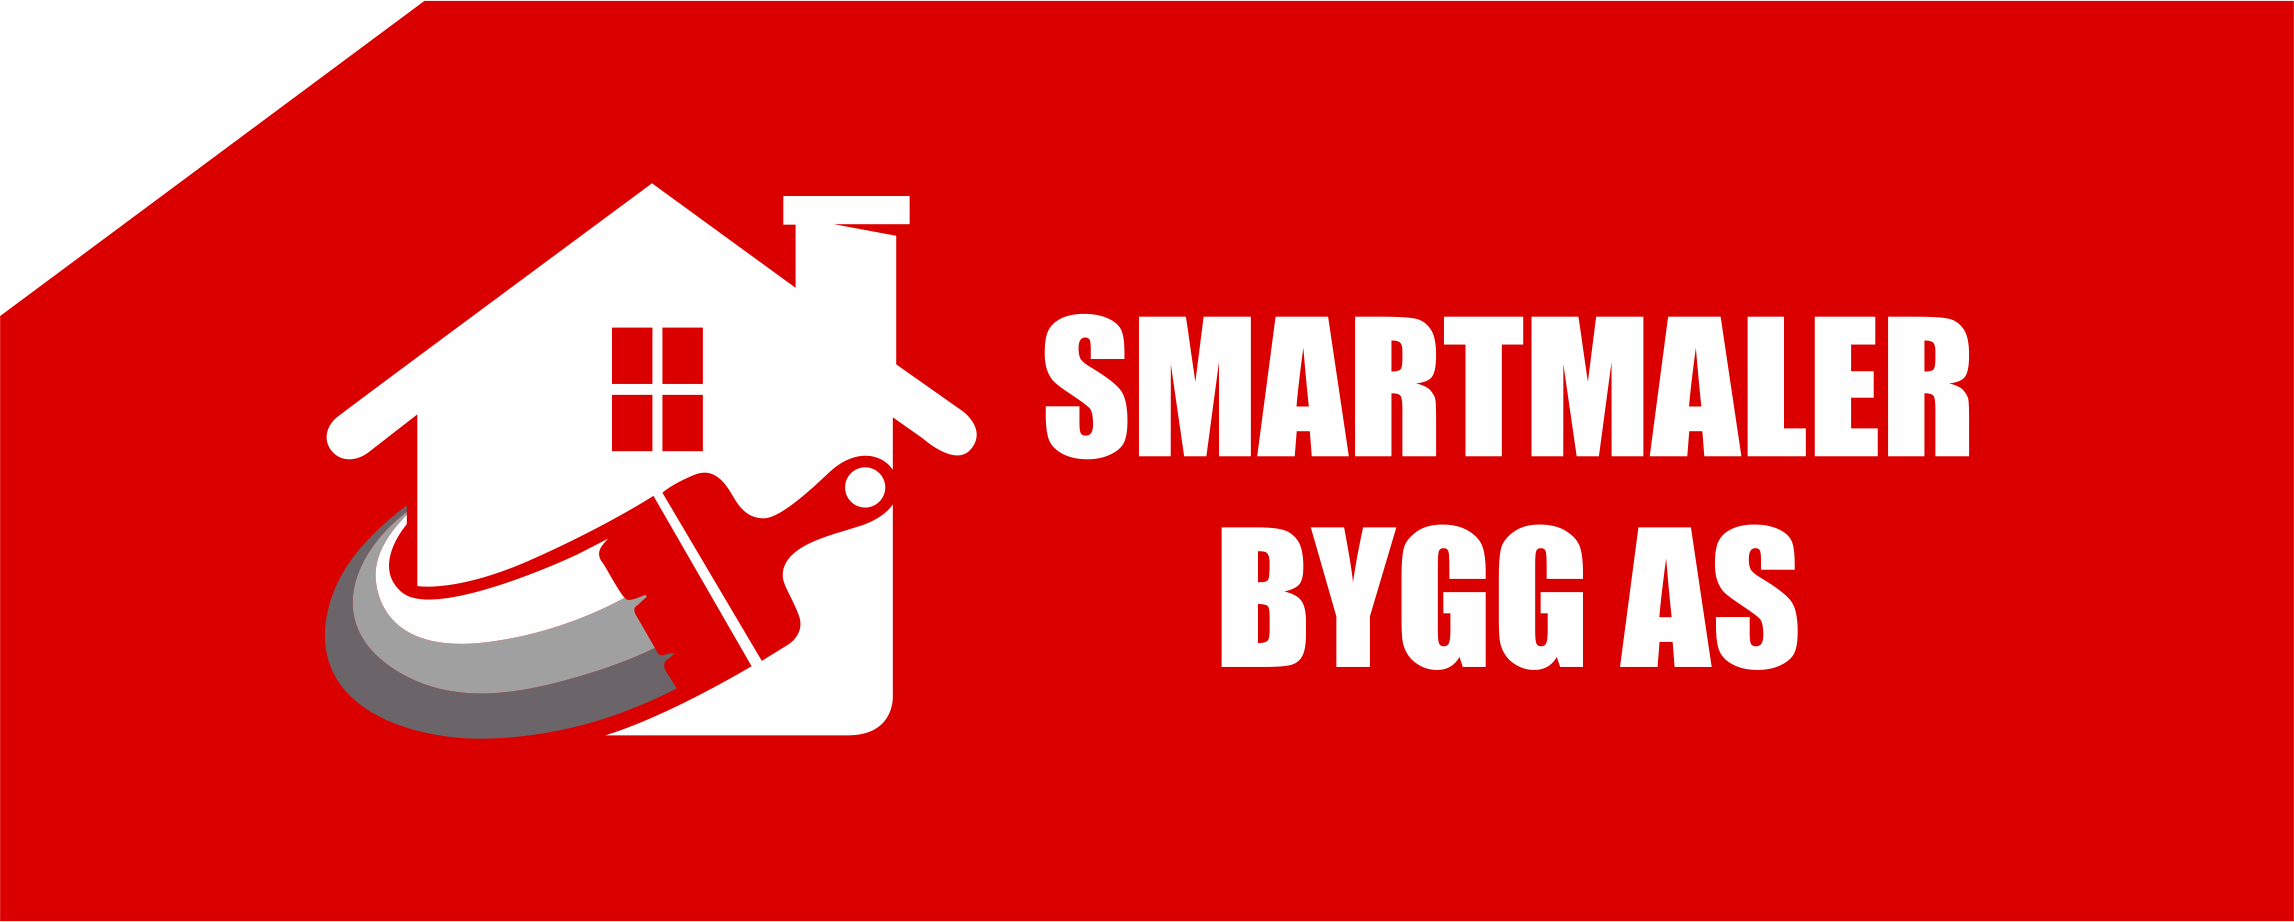 Smartmaler Bygg As